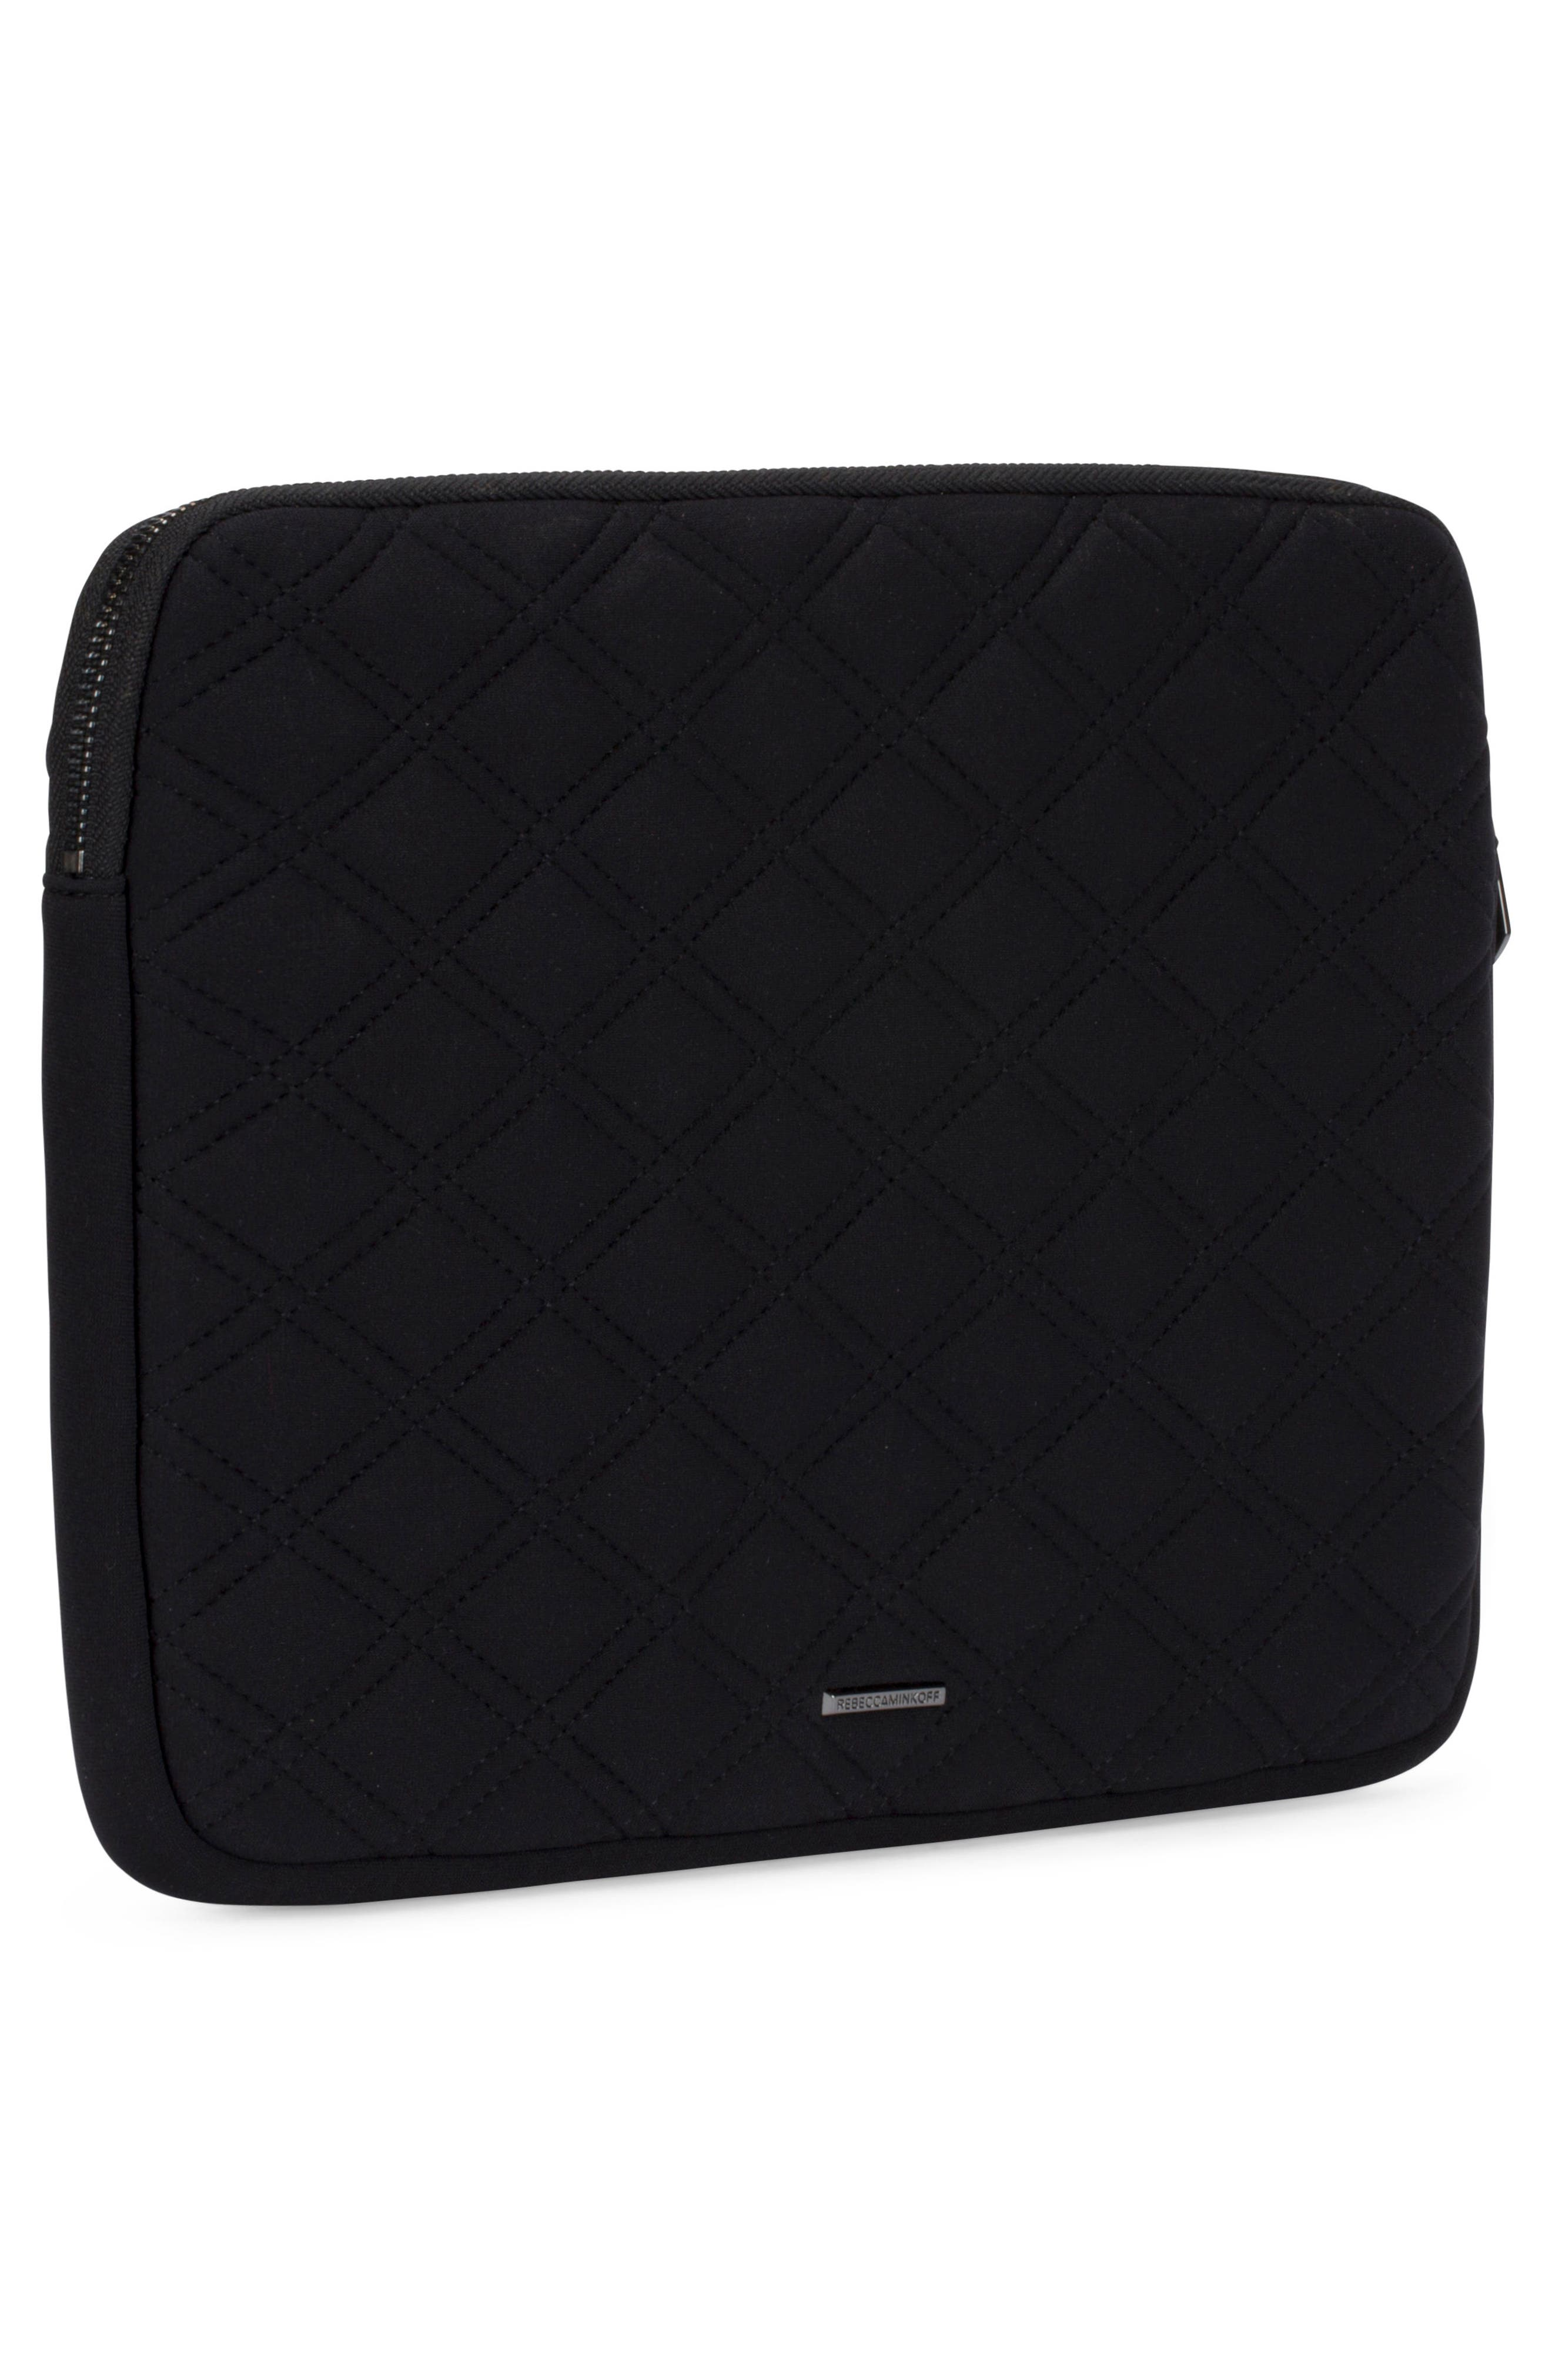 Quilted Stud Laptop Case,                             Alternate thumbnail 4, color,                             Black/ Black Pearl Studs